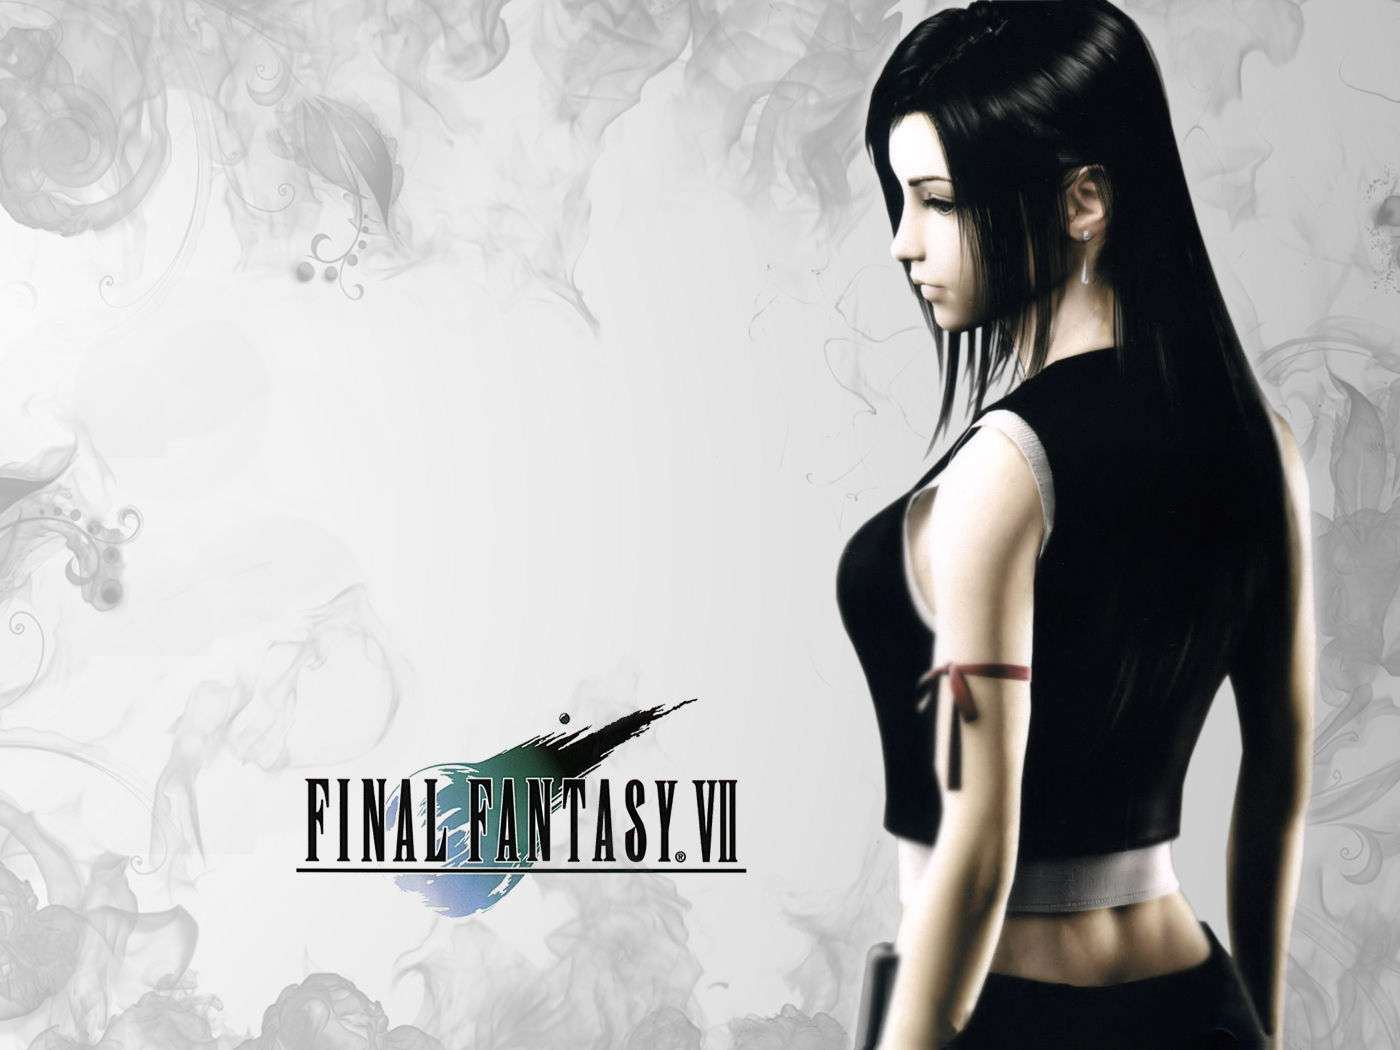 Final Fantasy Video Game Wallpaper 017